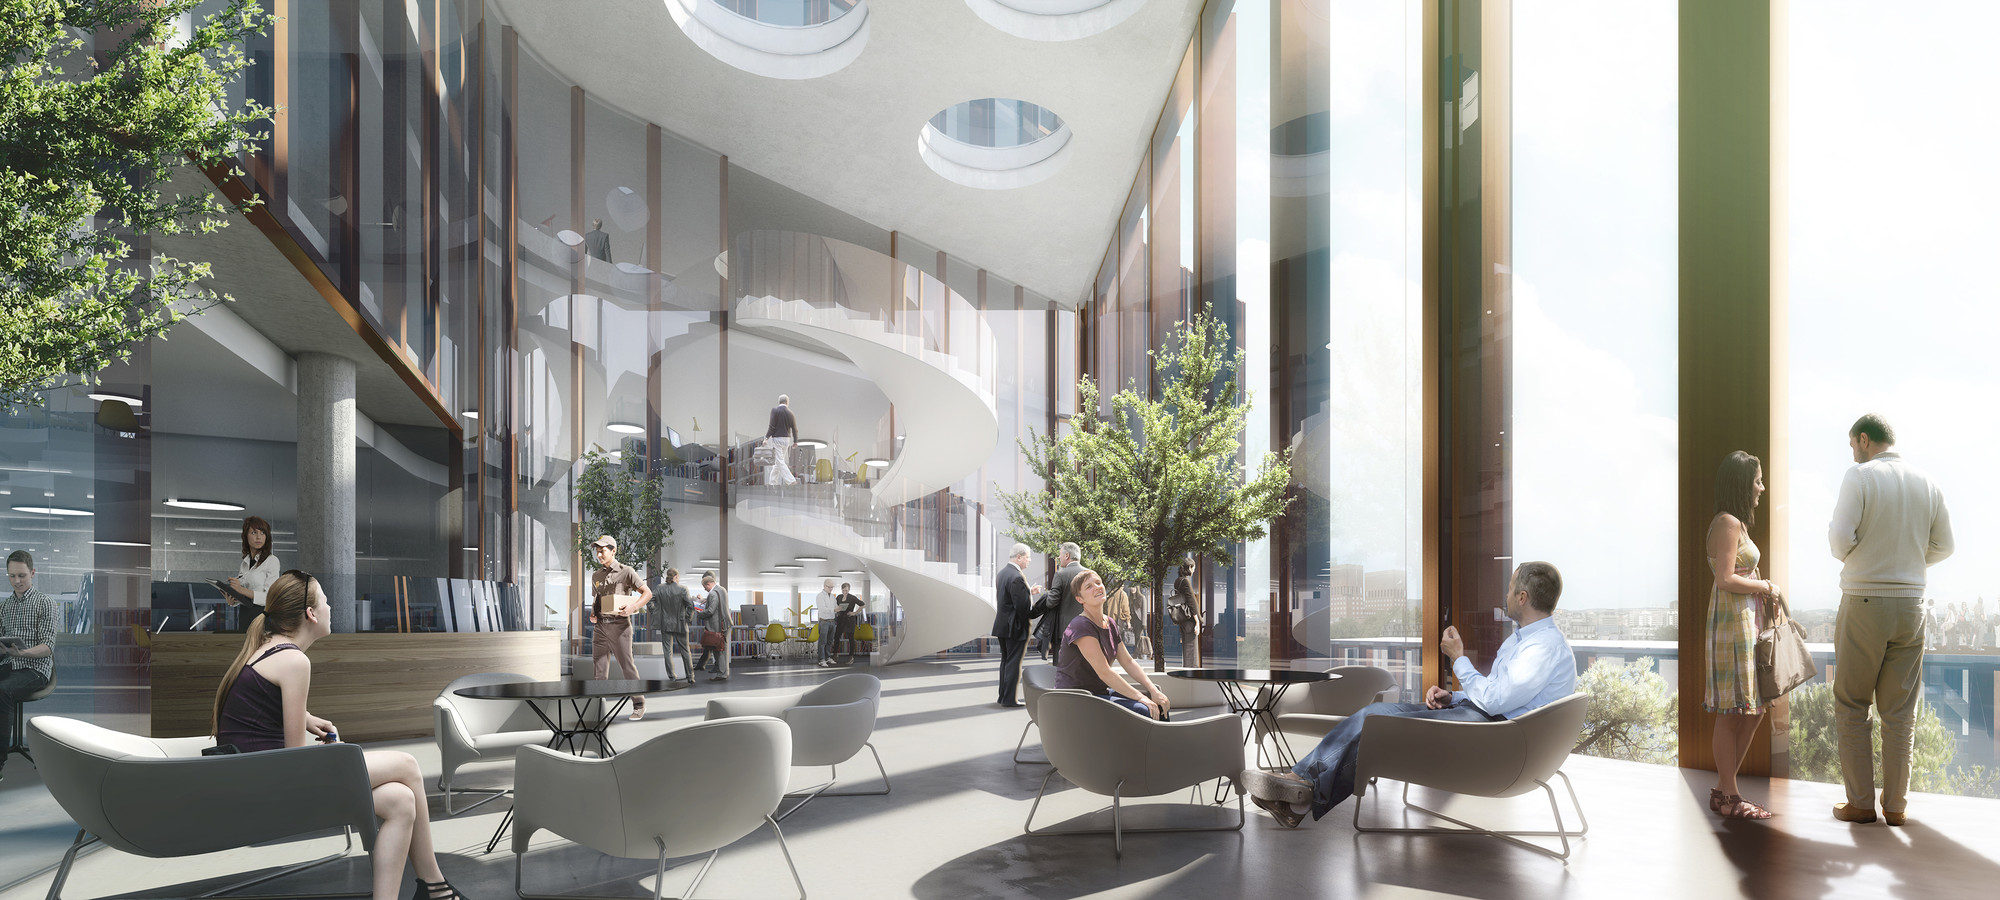 Schmidt Hammer Lassen Wins Competition To Design Mixed Use